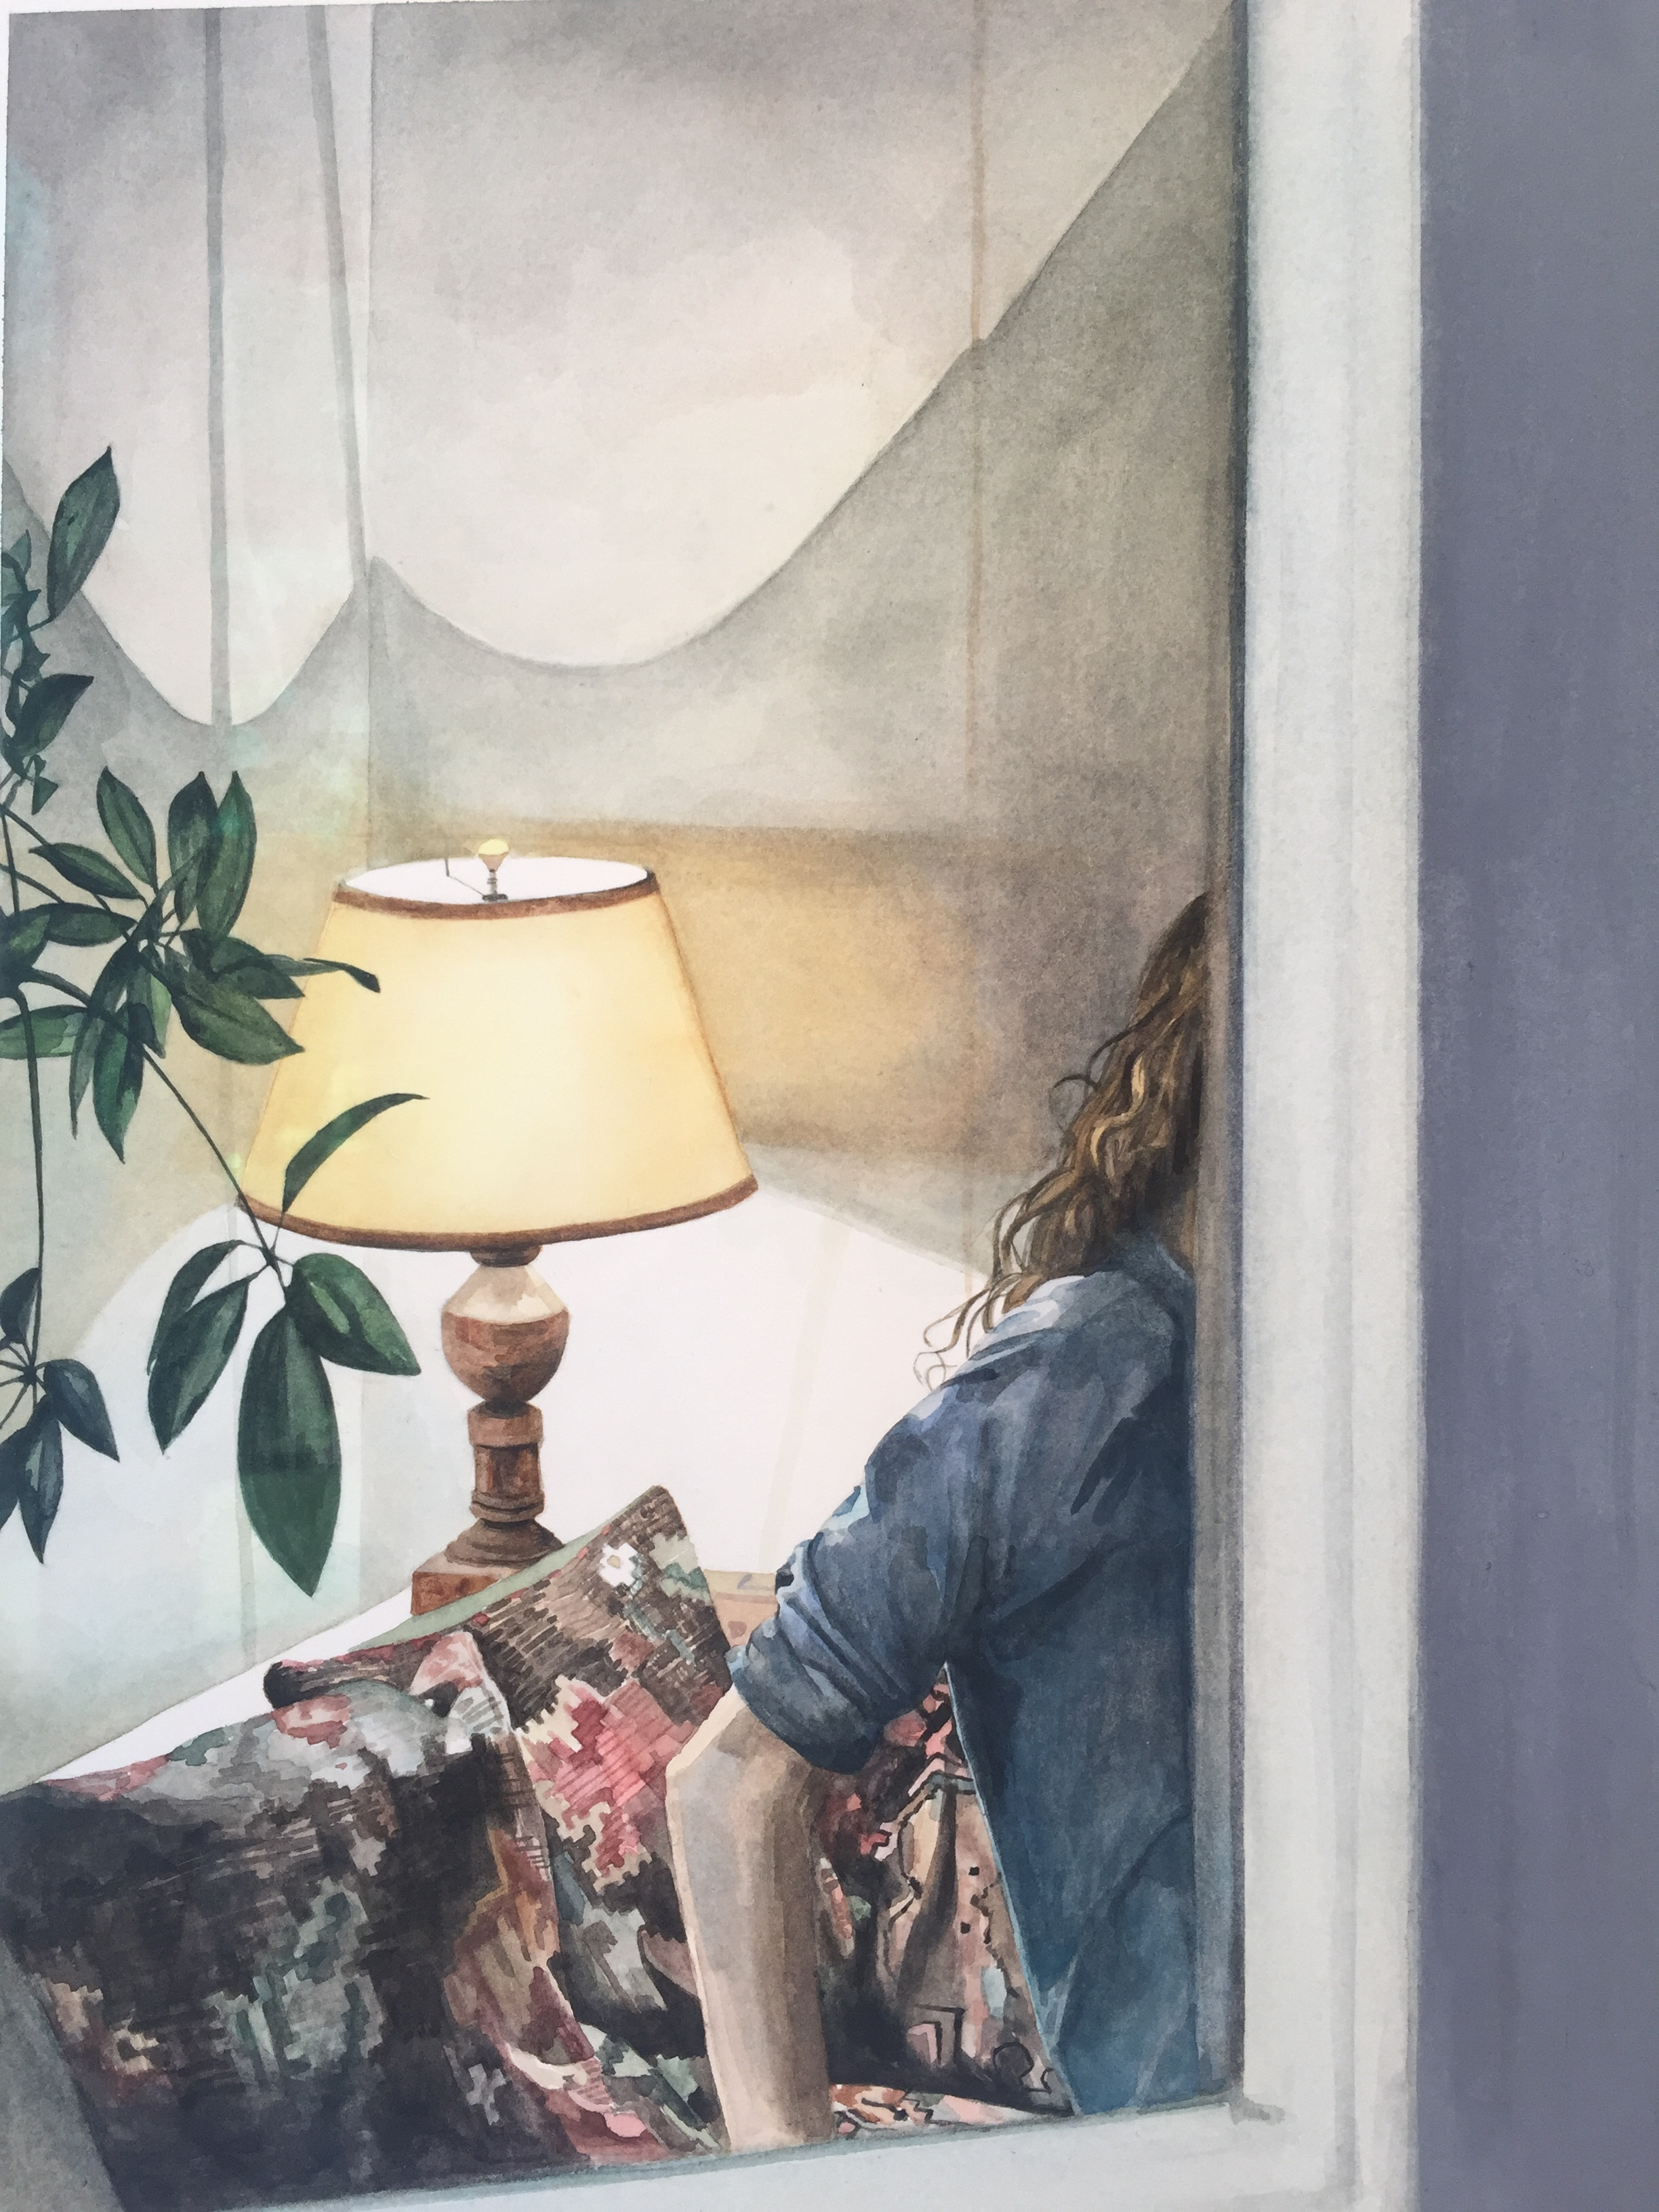 Heather Goodchild,Lamp through backdoor, 2016,watercolor on paper,12 x 9 inches.